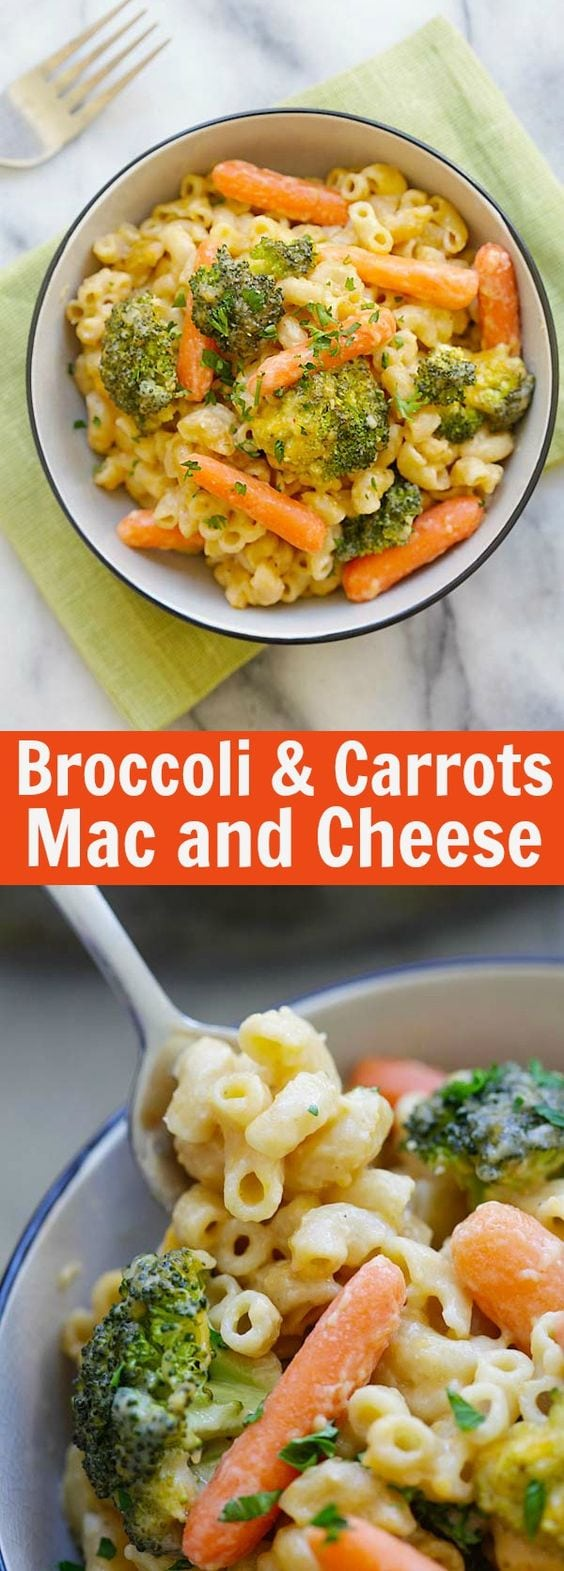 Mac and Cheese with Broccoli and Carrots – skillet Mac and Cheese loaded with healthy broccoli and carrots. Even the pickiest eaters like it | rasamalaysia.com